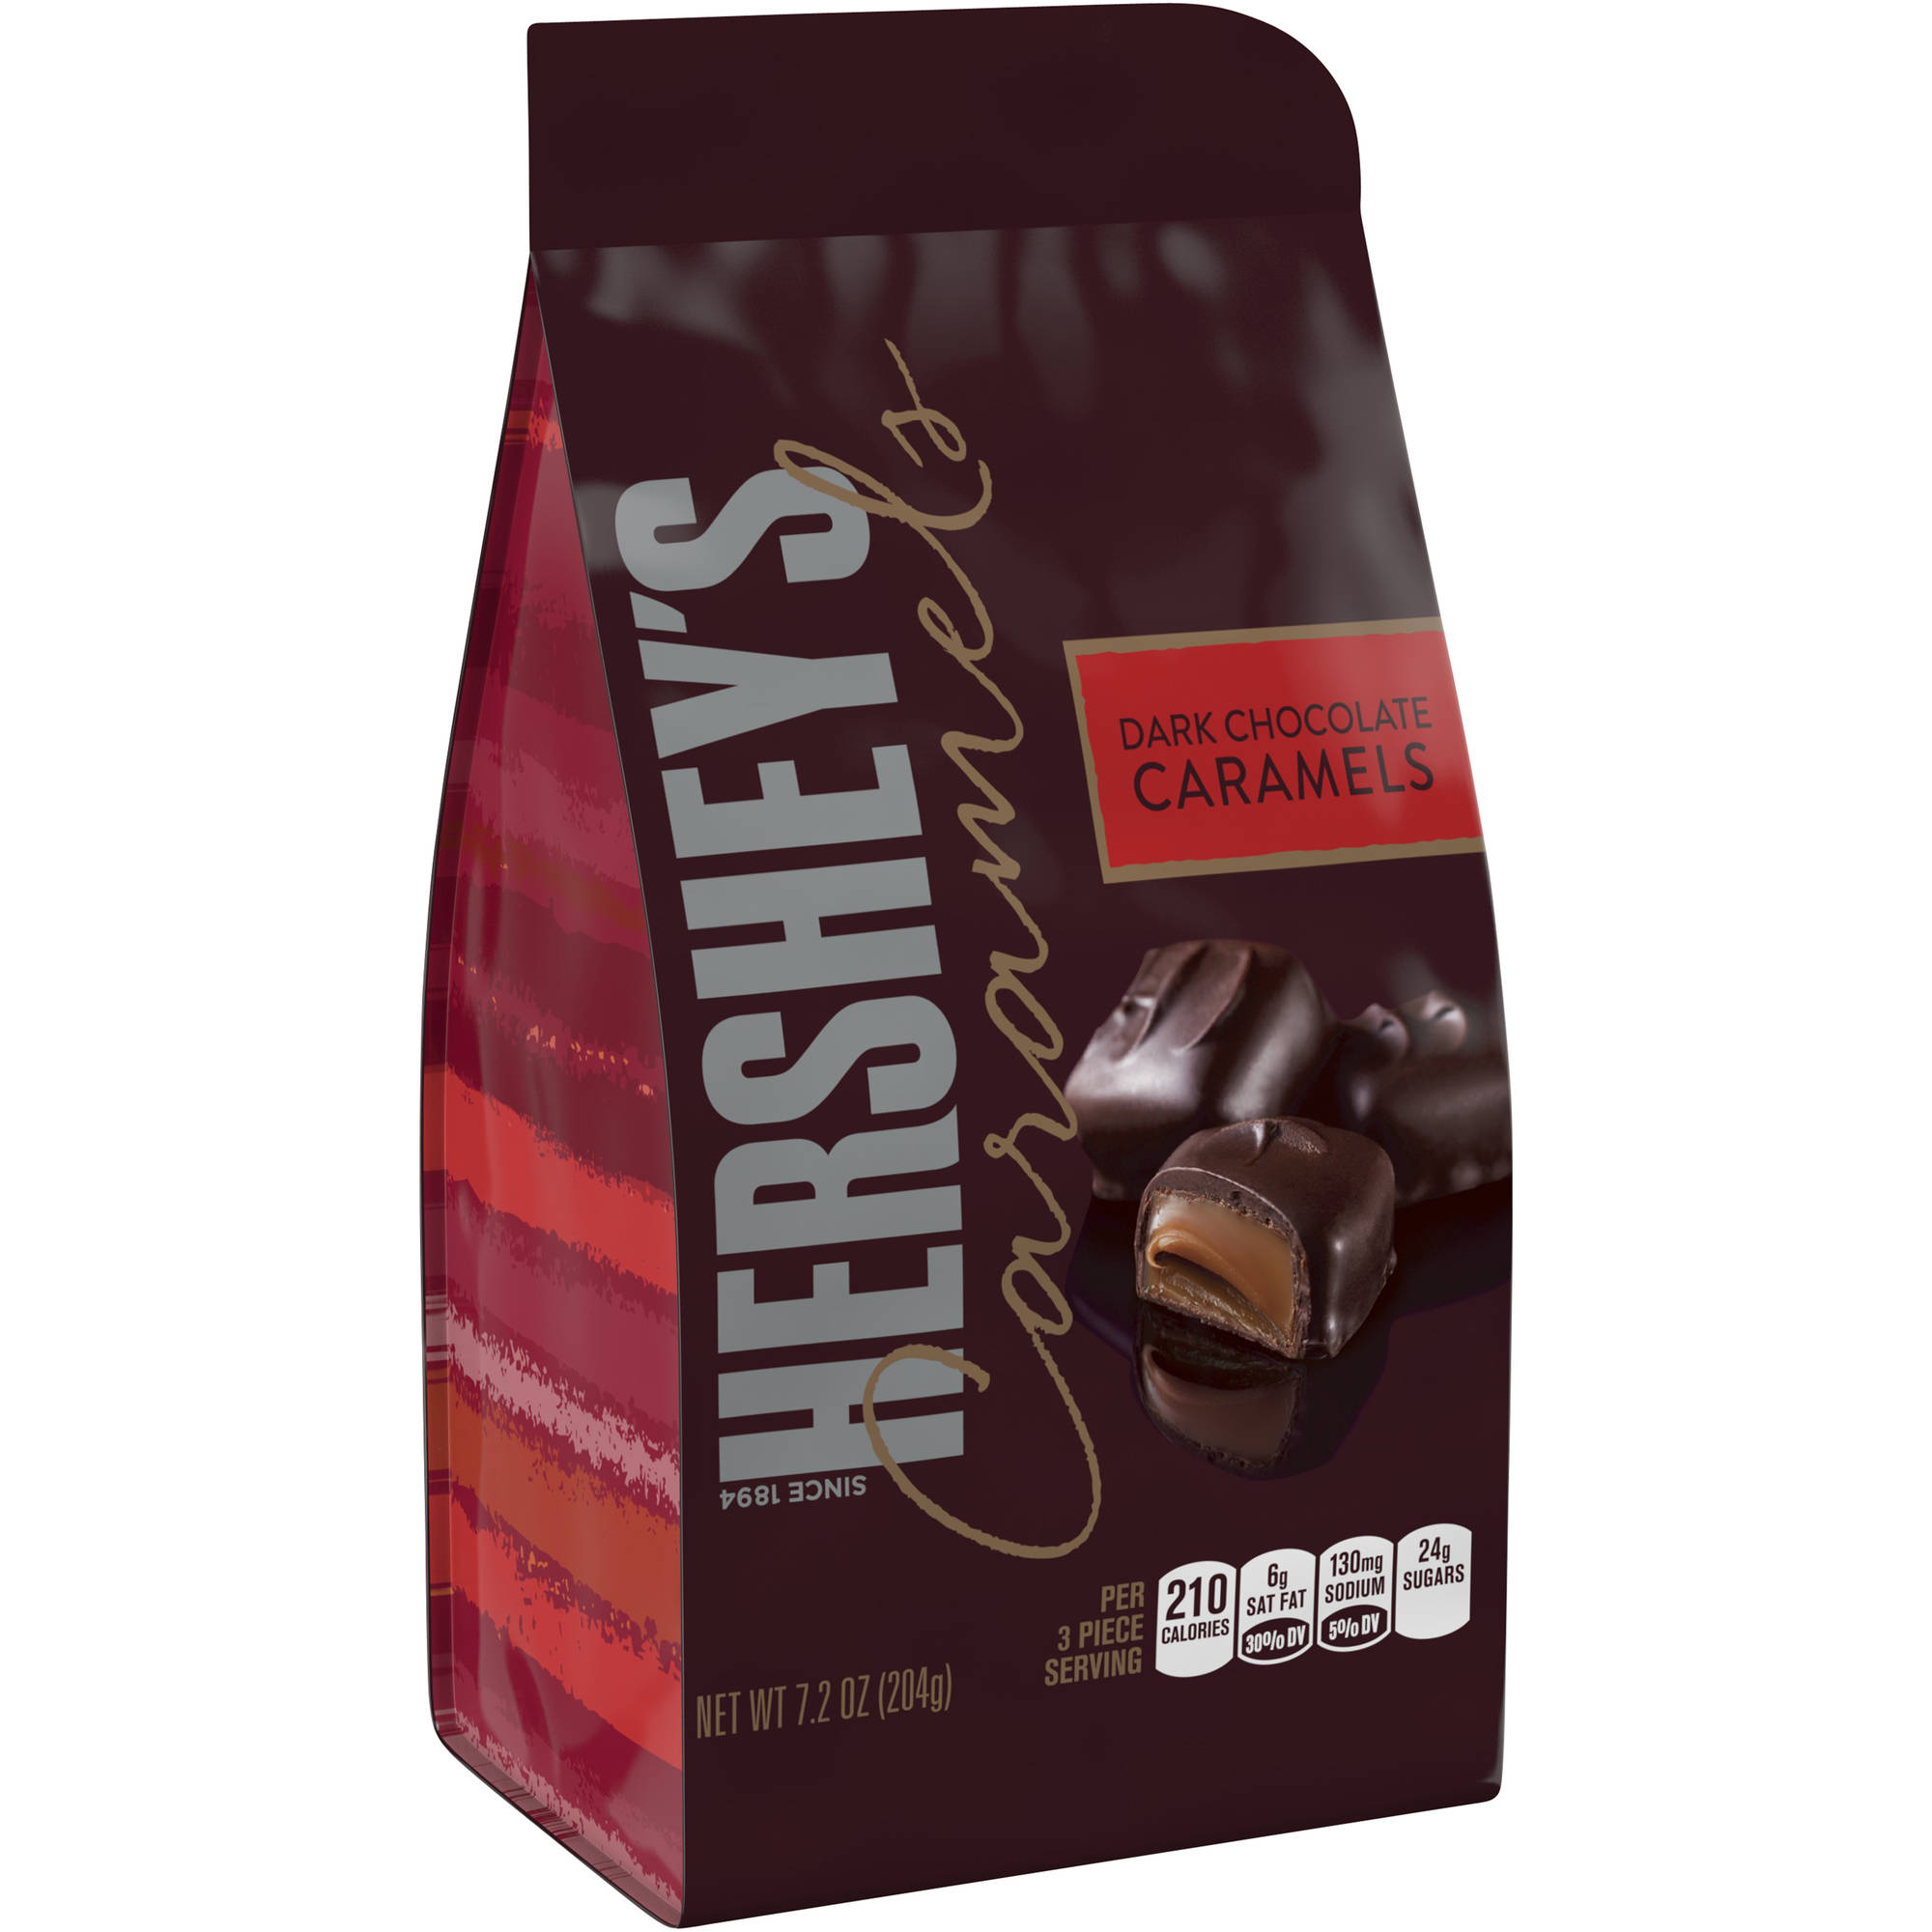 Hershey's Dark Chocolate Caramels, 7.2 oz